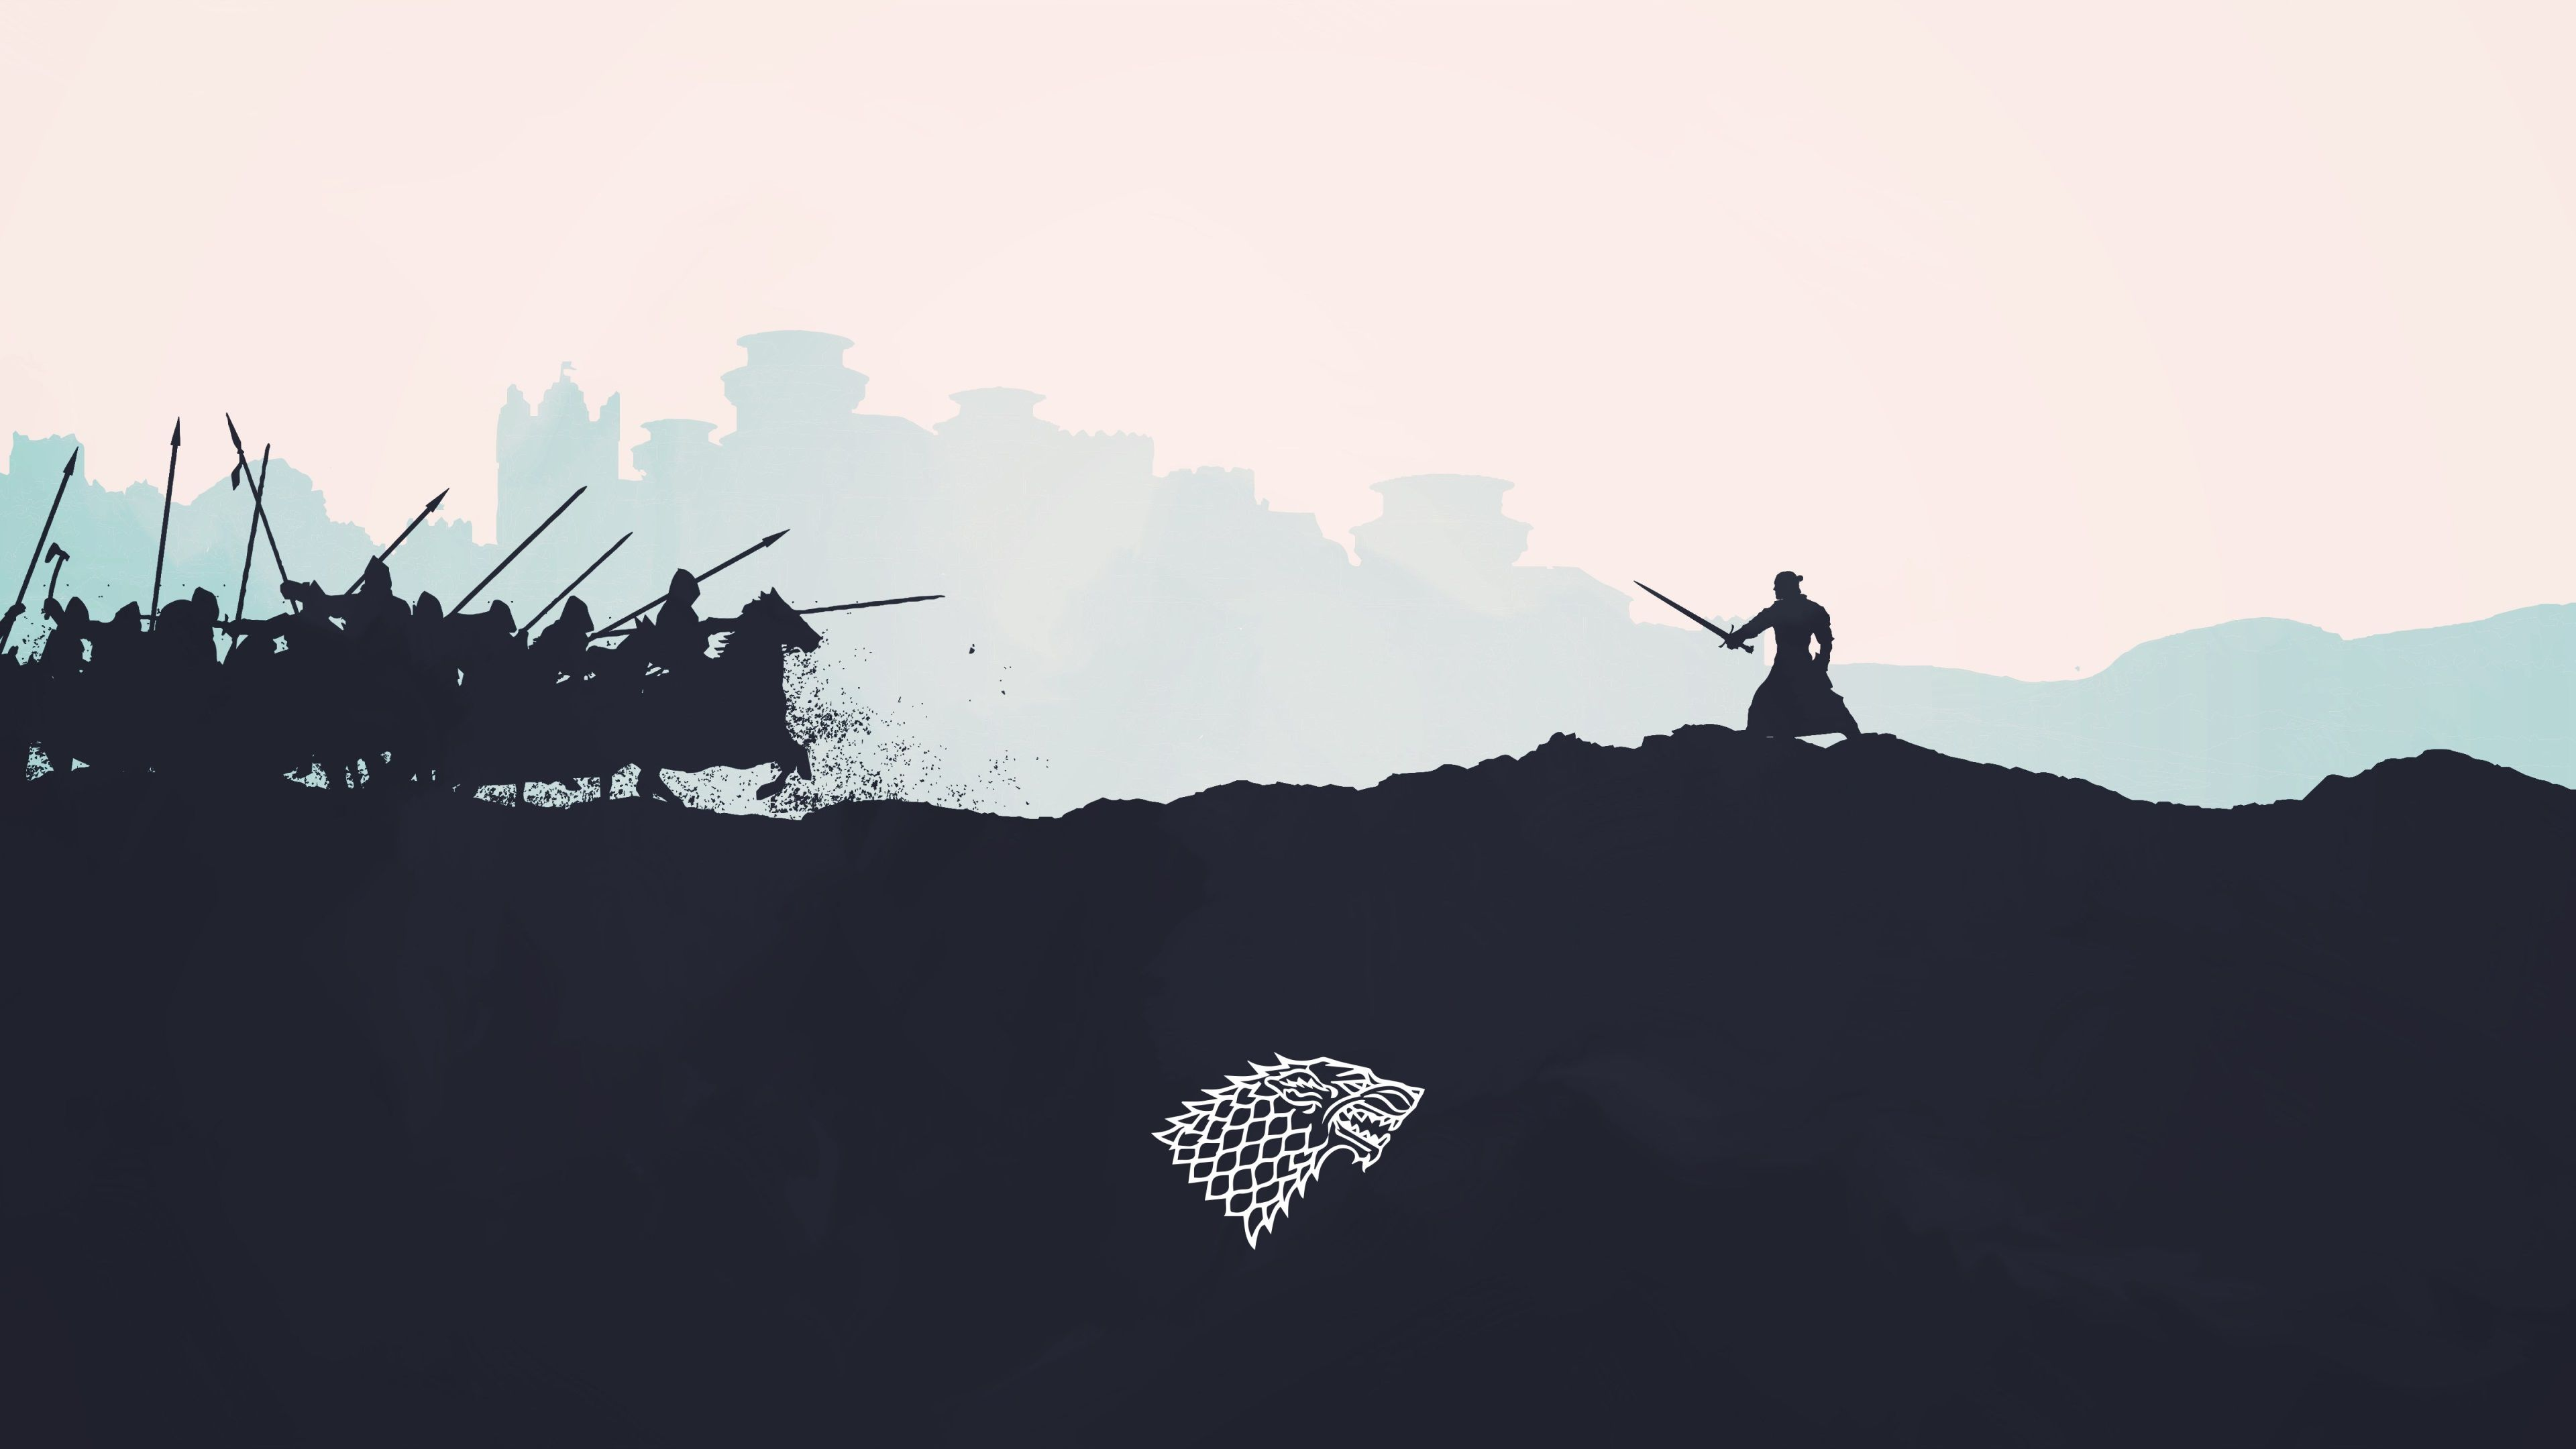 3840x2160 Game Of Thrones 4k Desktop Backgrounds Wallpaper Desktop Wallpapers Backgrounds Game Of Thrones Artwork Silhouette Art